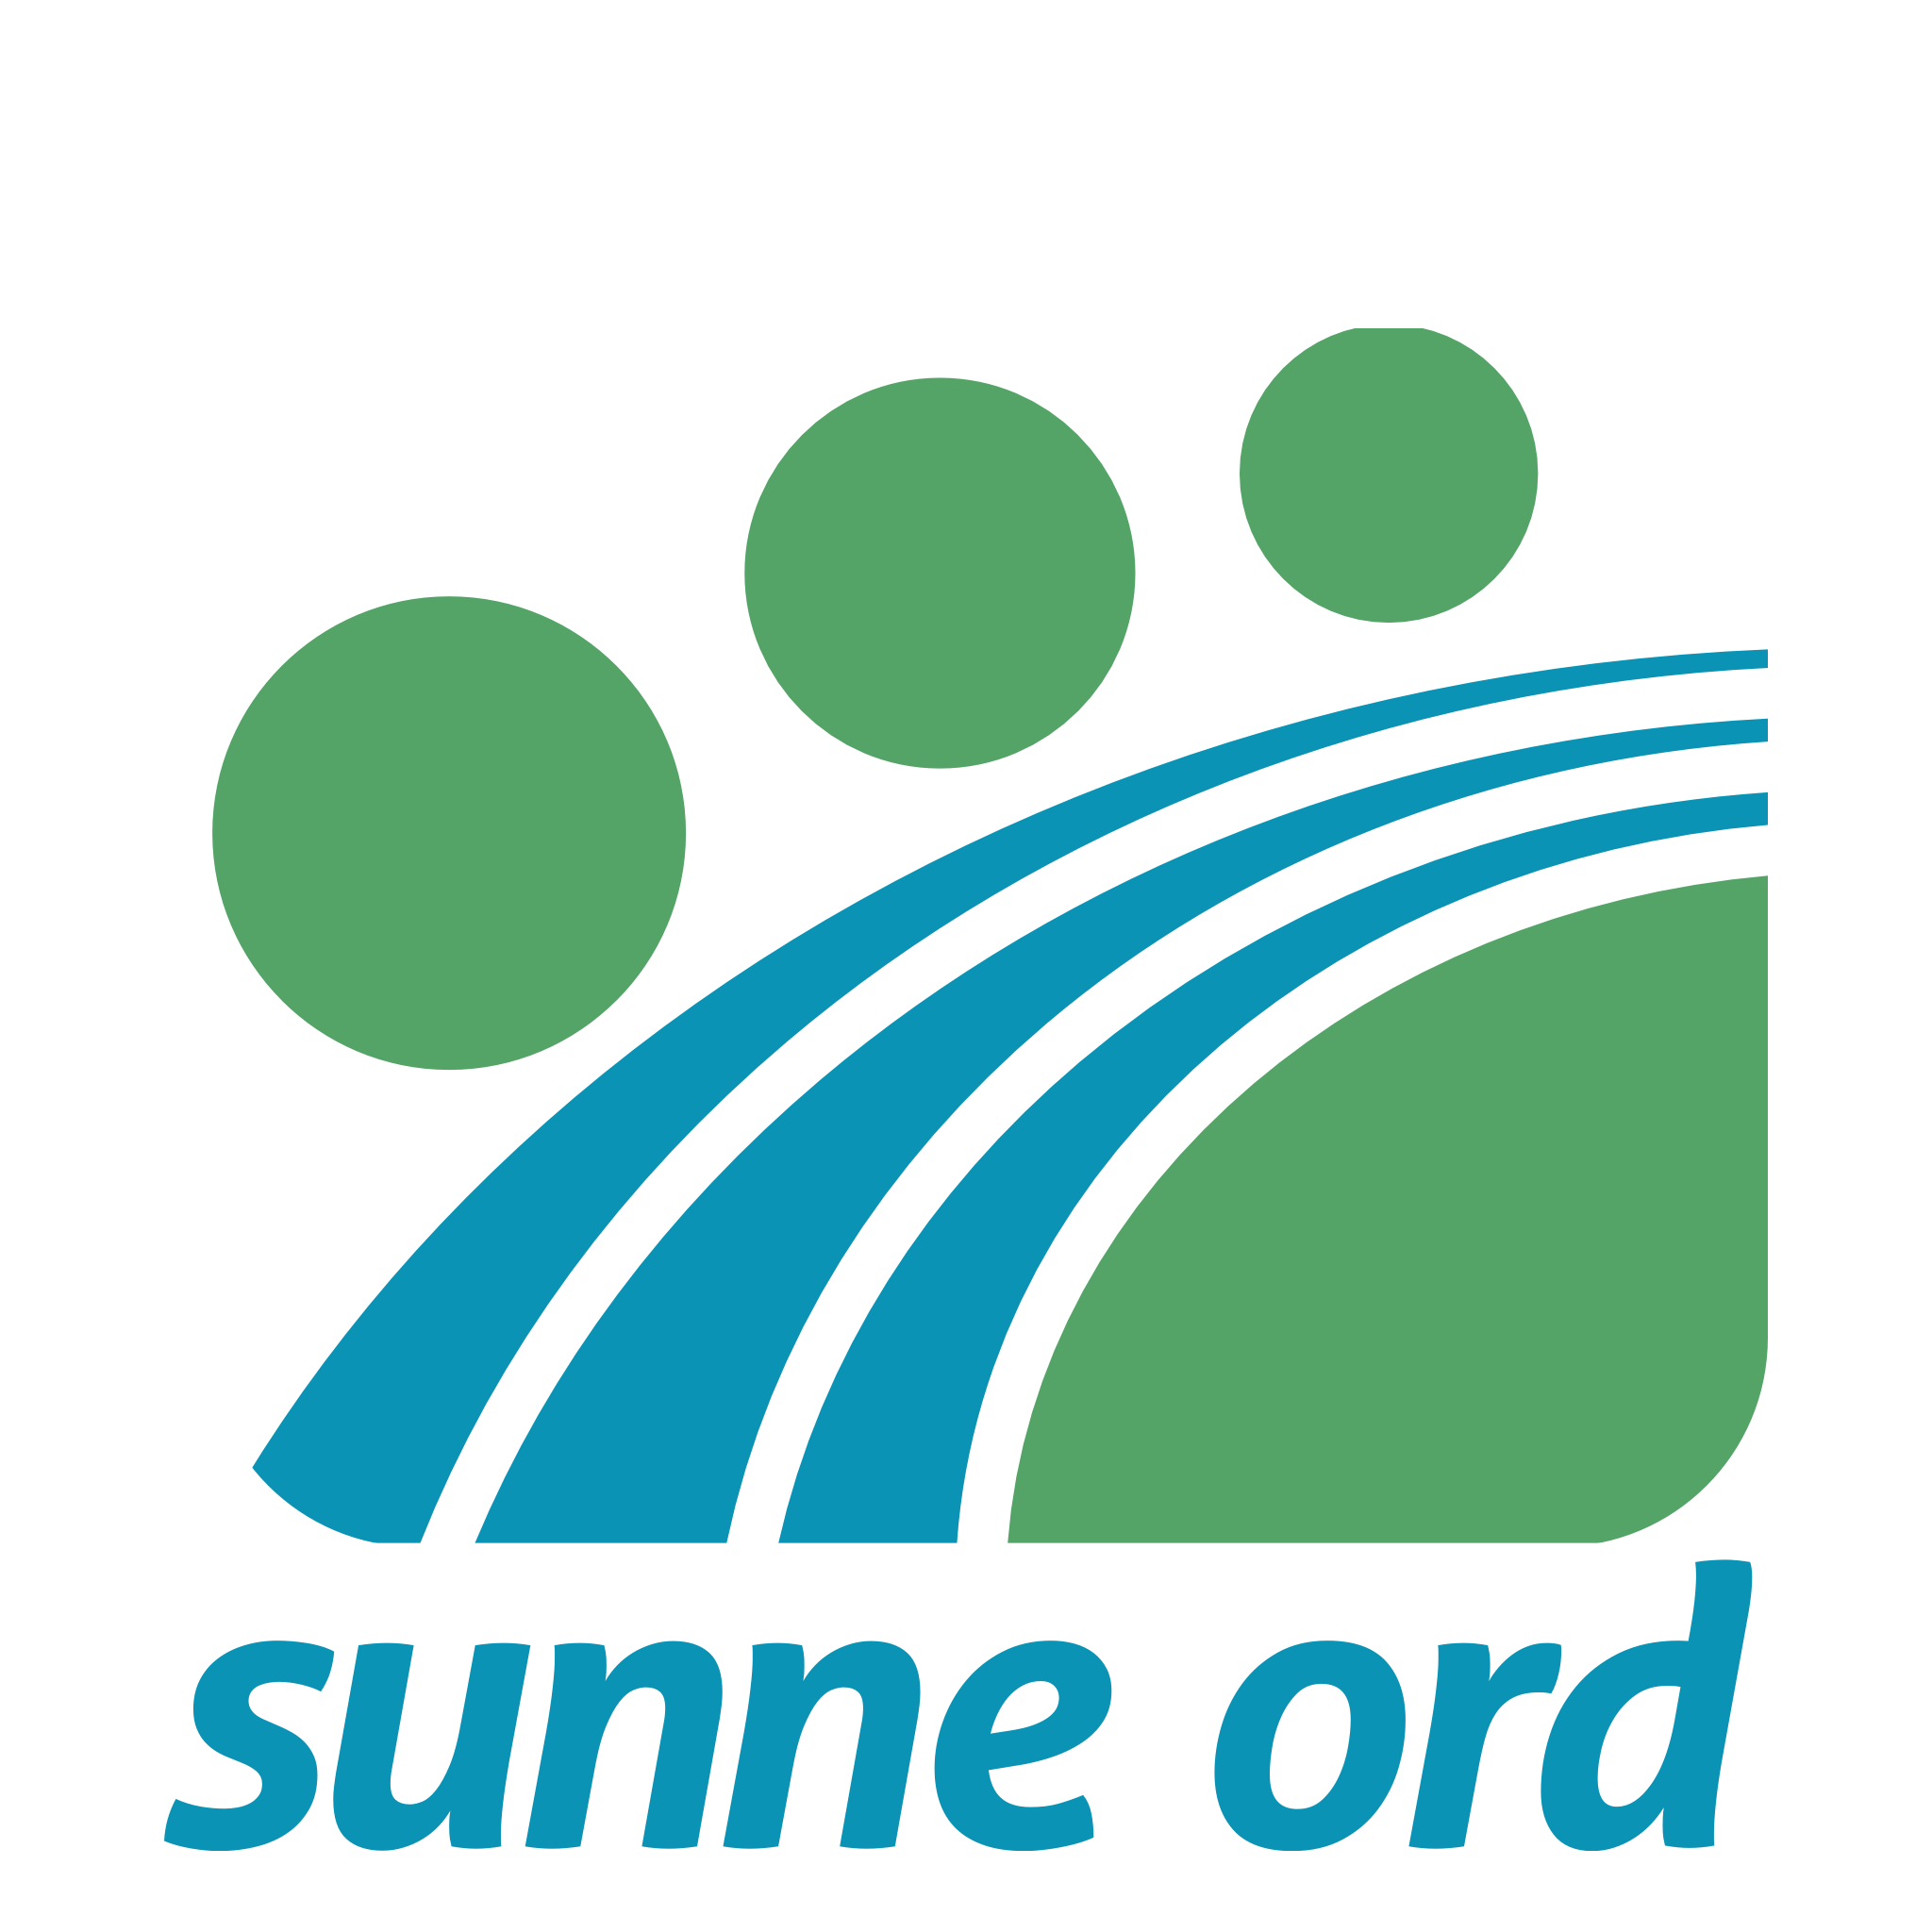 Sunne ord: Willy Sæther